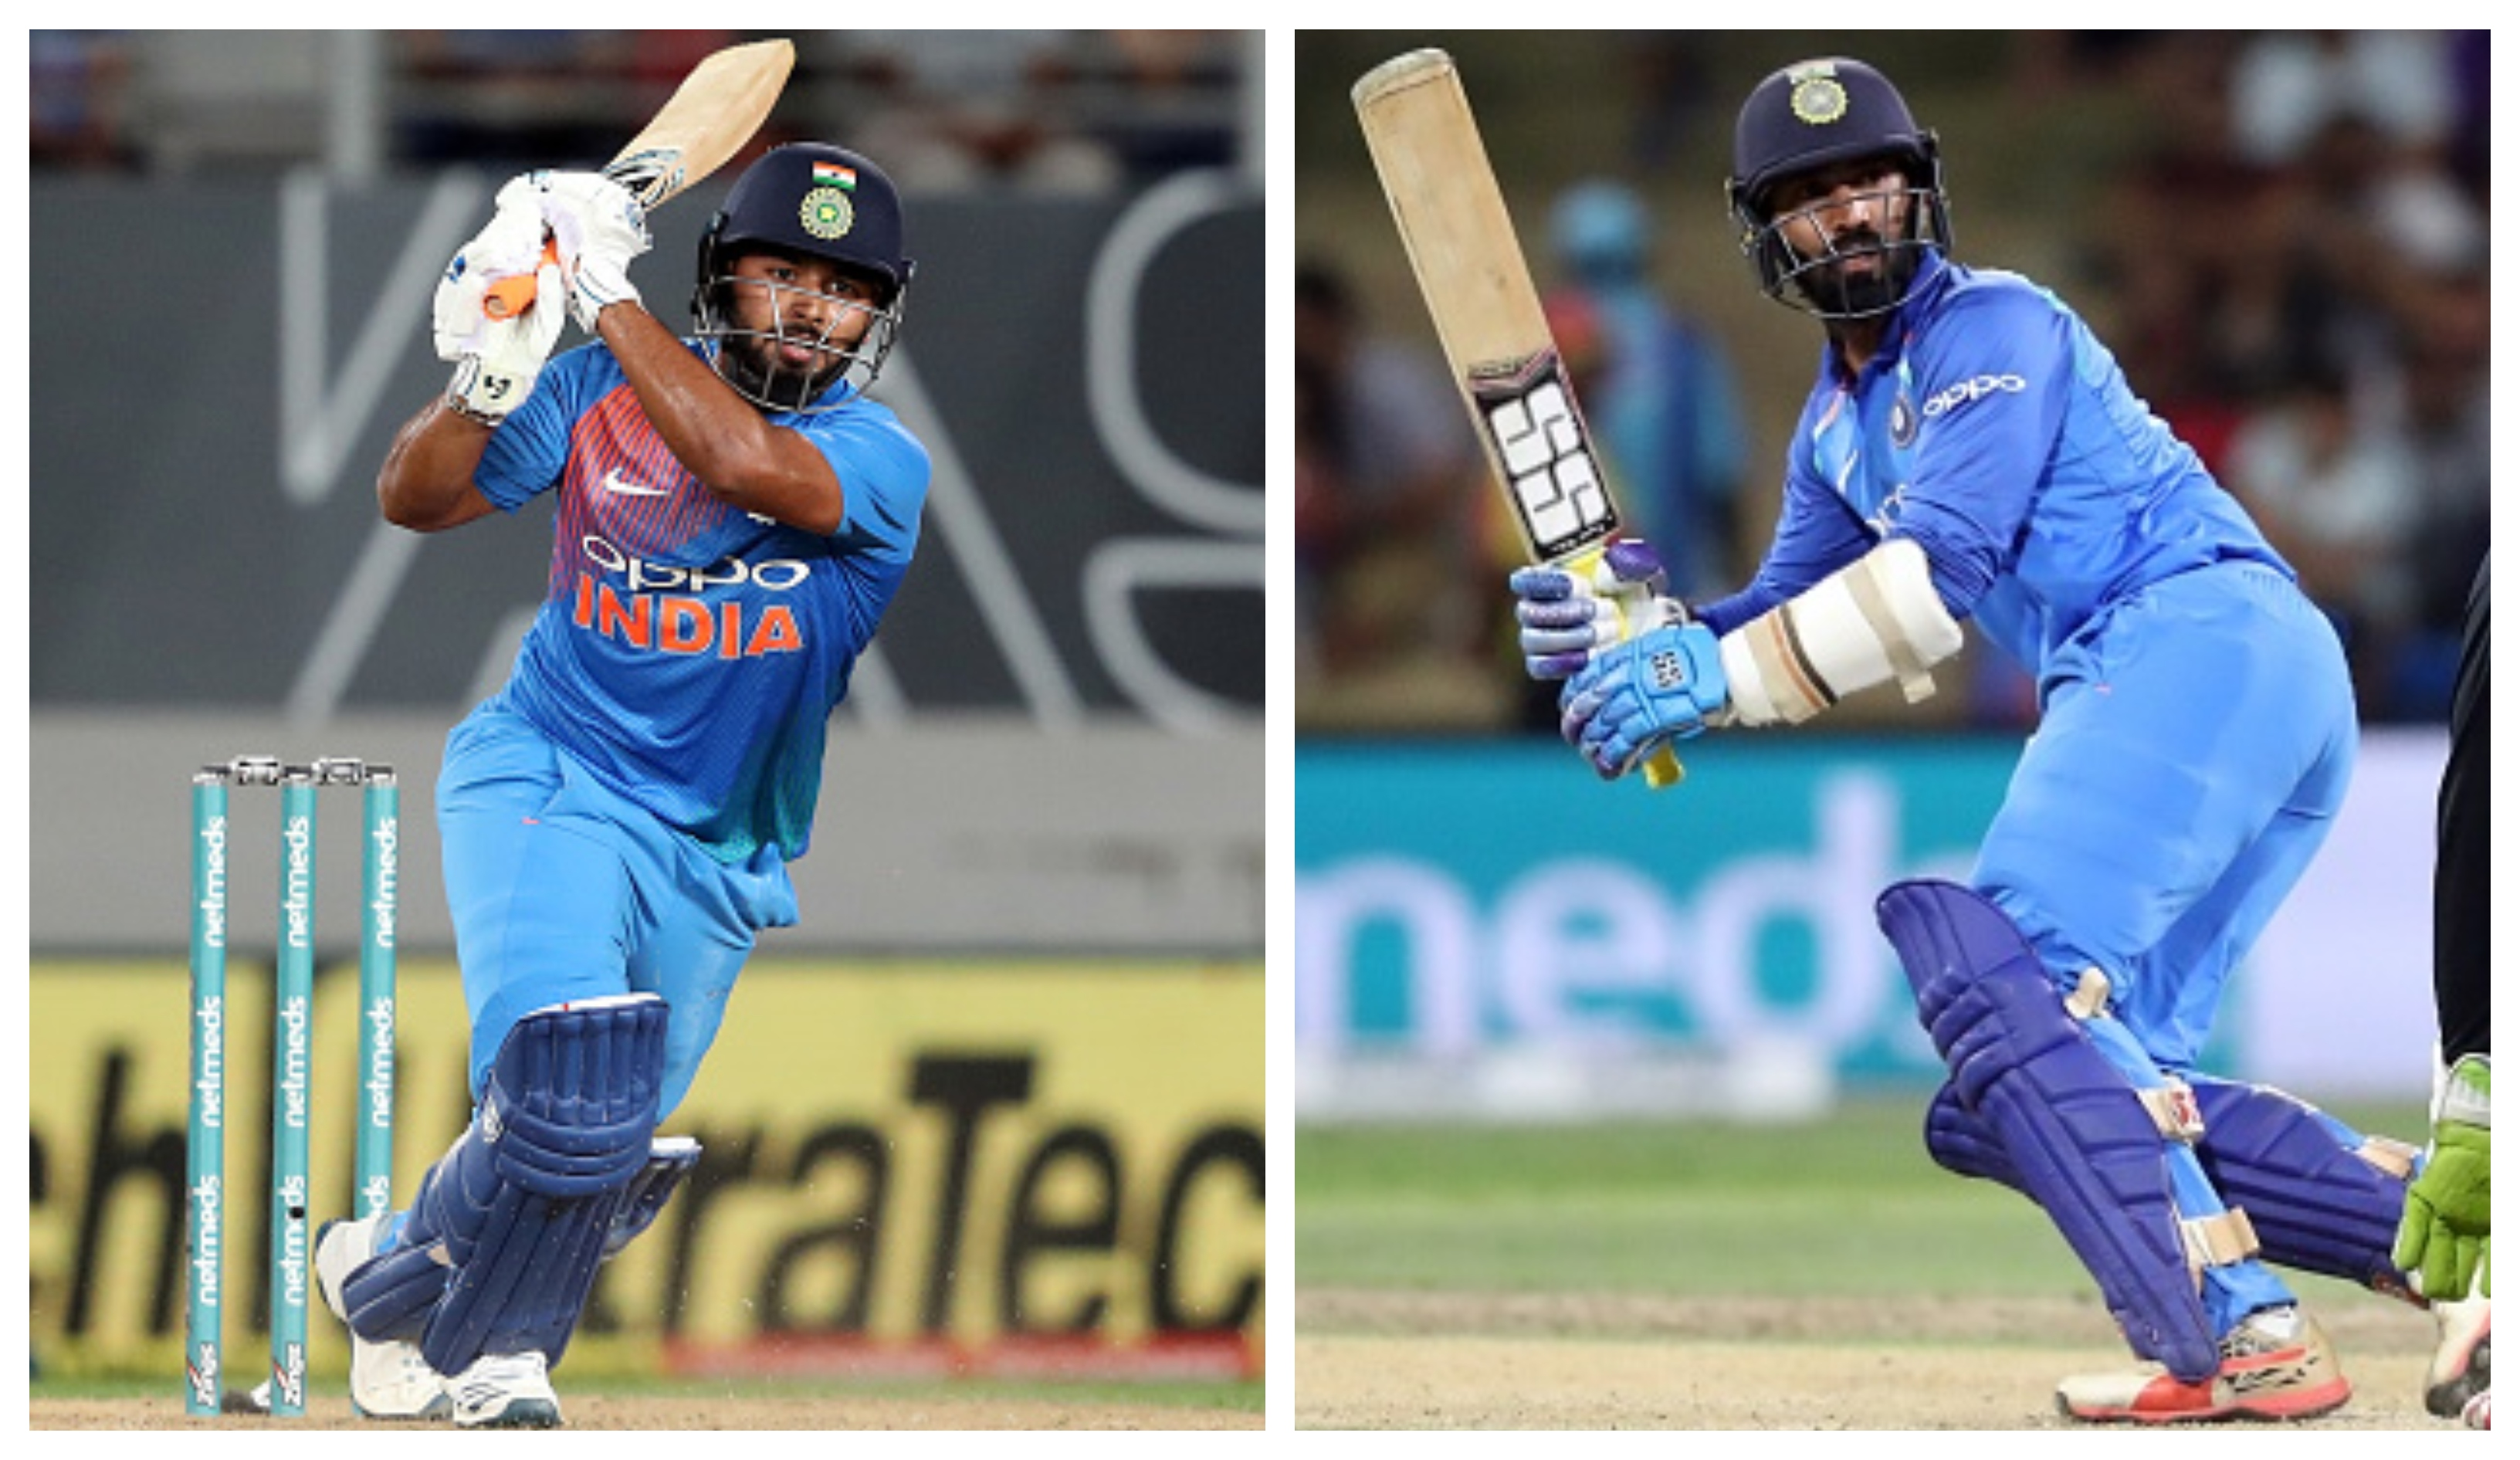 A shoot-out is also expected between Rishabh Pant and Dinesh Karthik | Getty